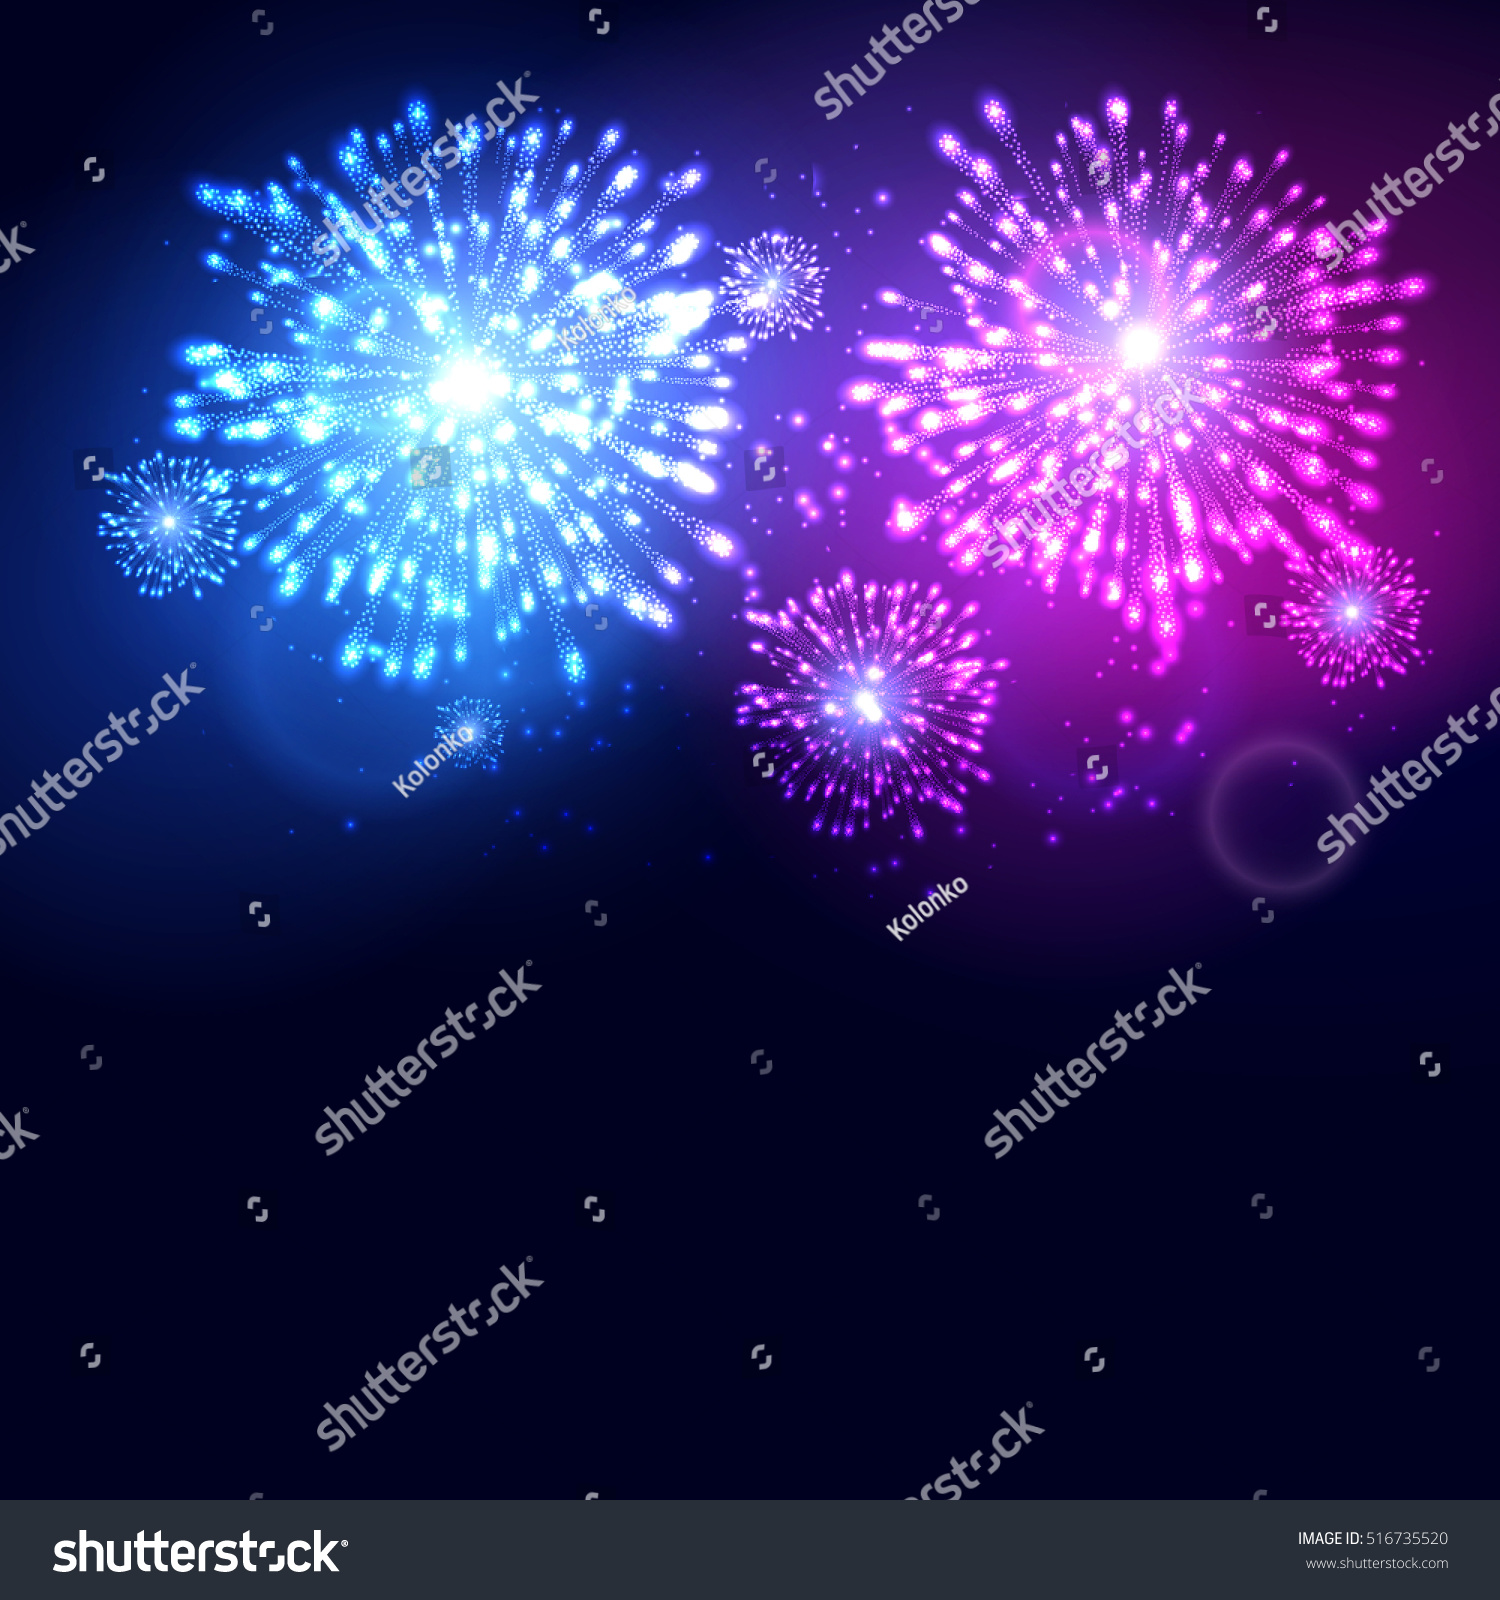 great firework template photos >> fireworks powerpoint templates, Presentation templates